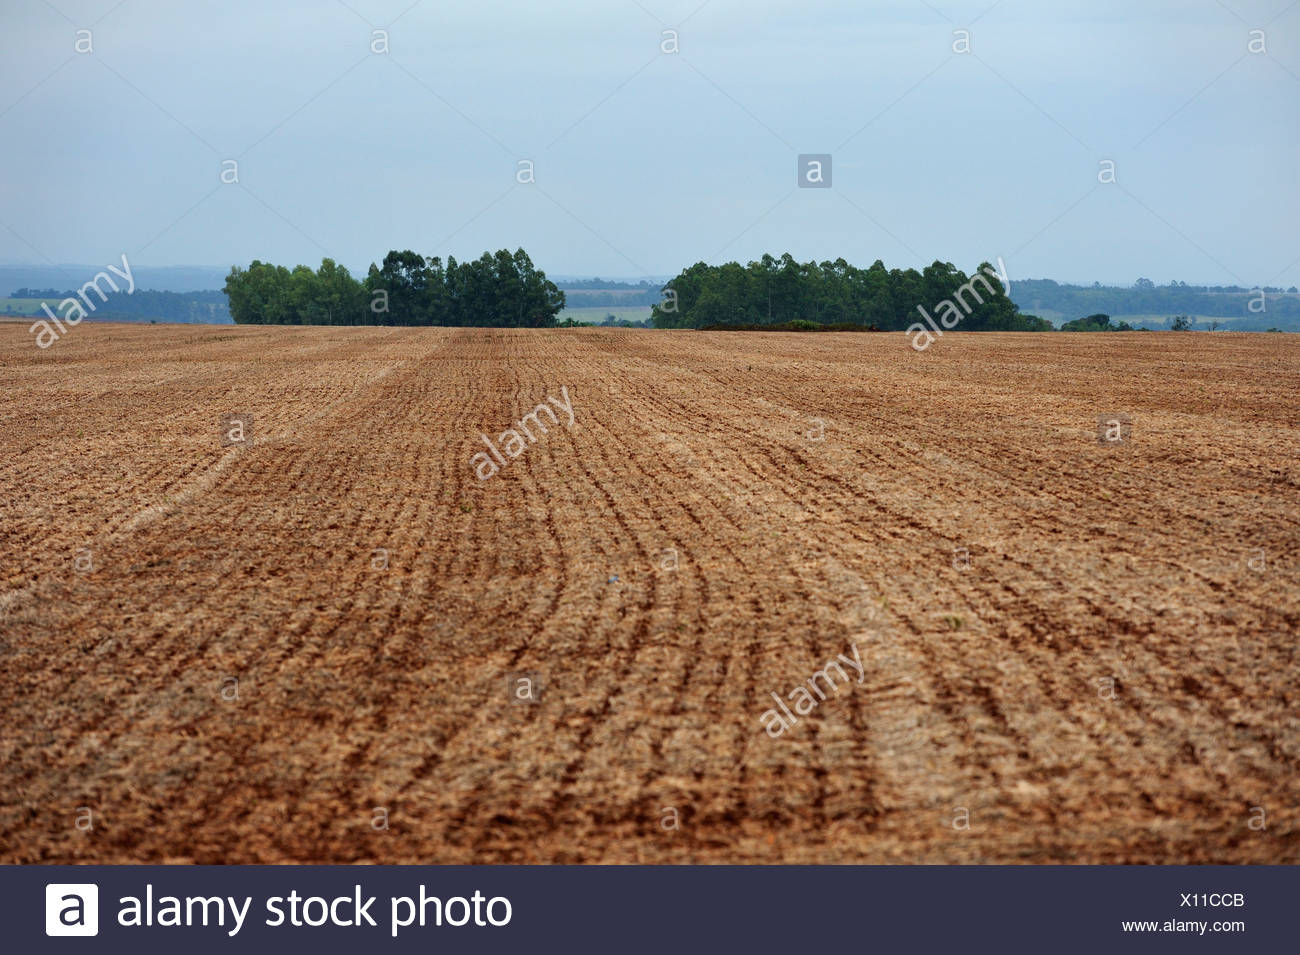 Plowed field owned by a large-scale landowner, remains of the original forest vegetation at the back, Alto Parana, Paraguay - Stock Image